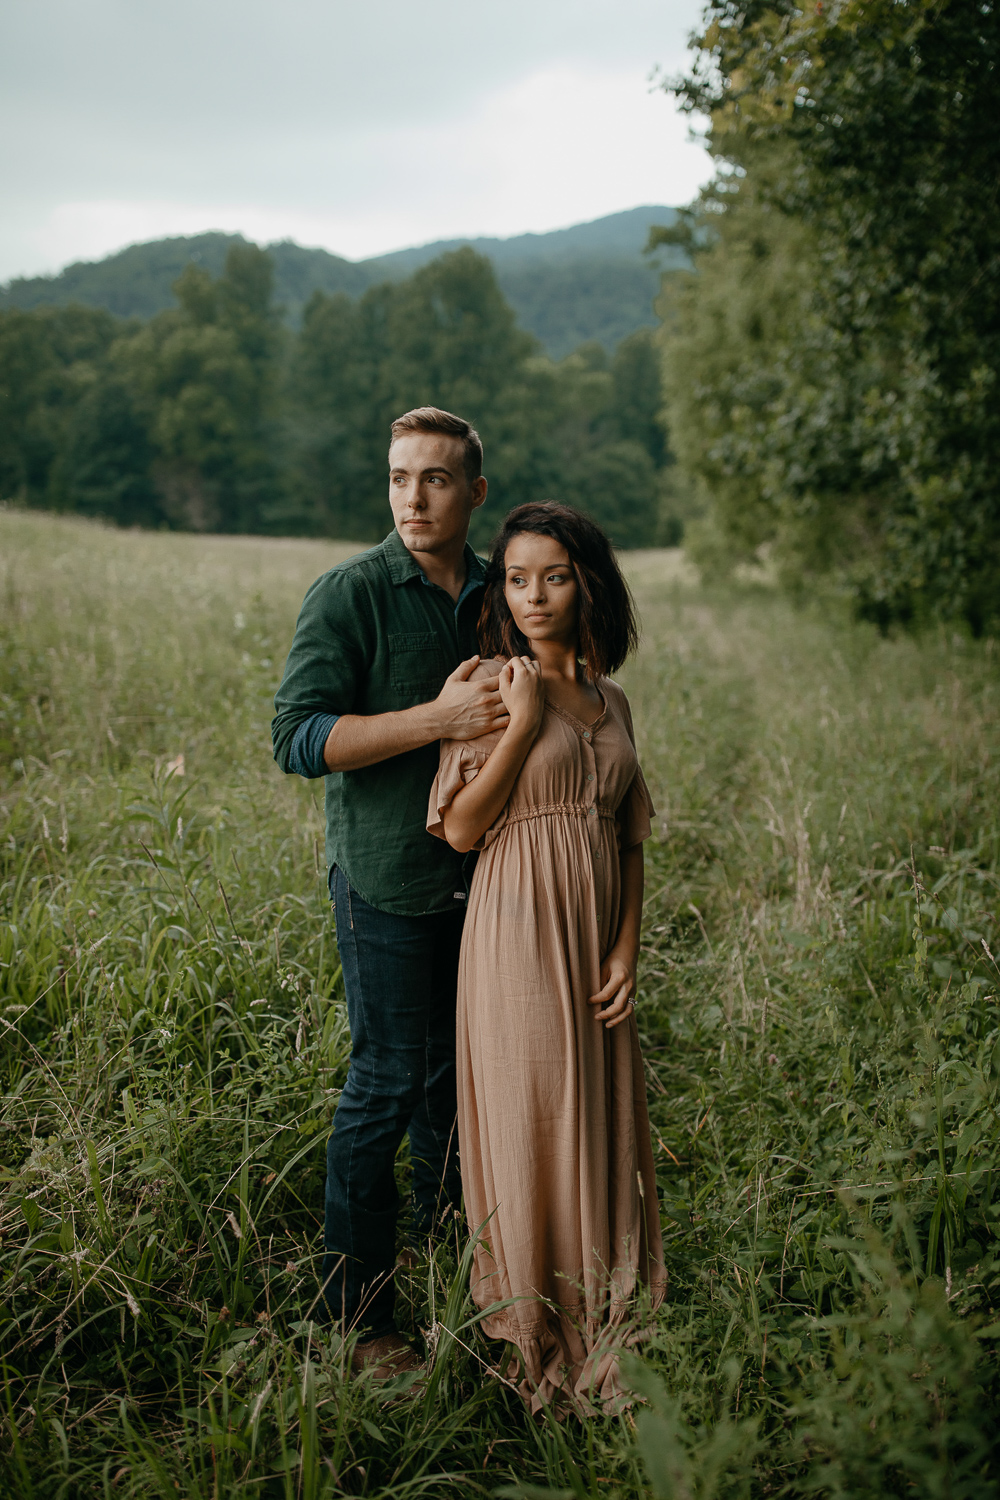 ariannamtorres and isaac engagement session at cades cove smoky mountains elopement-49.jpg